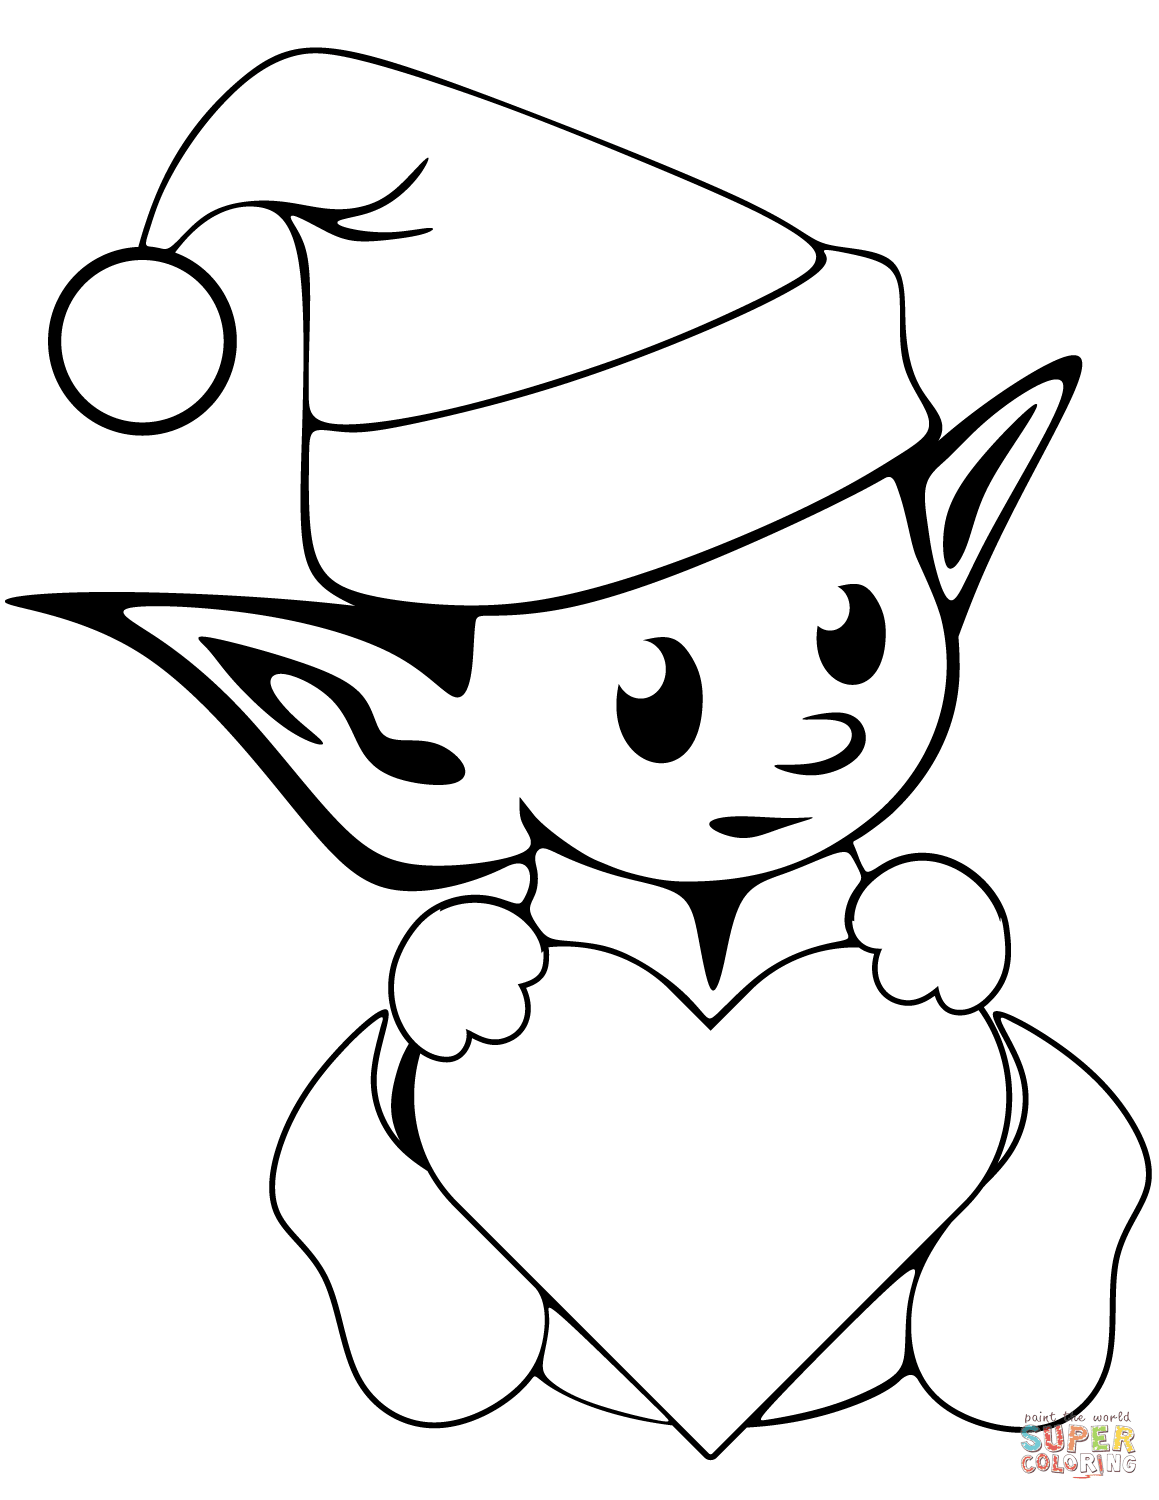 1159x1500 Cute Christmas Elf Coloring Page Free Printable Coloring Pages